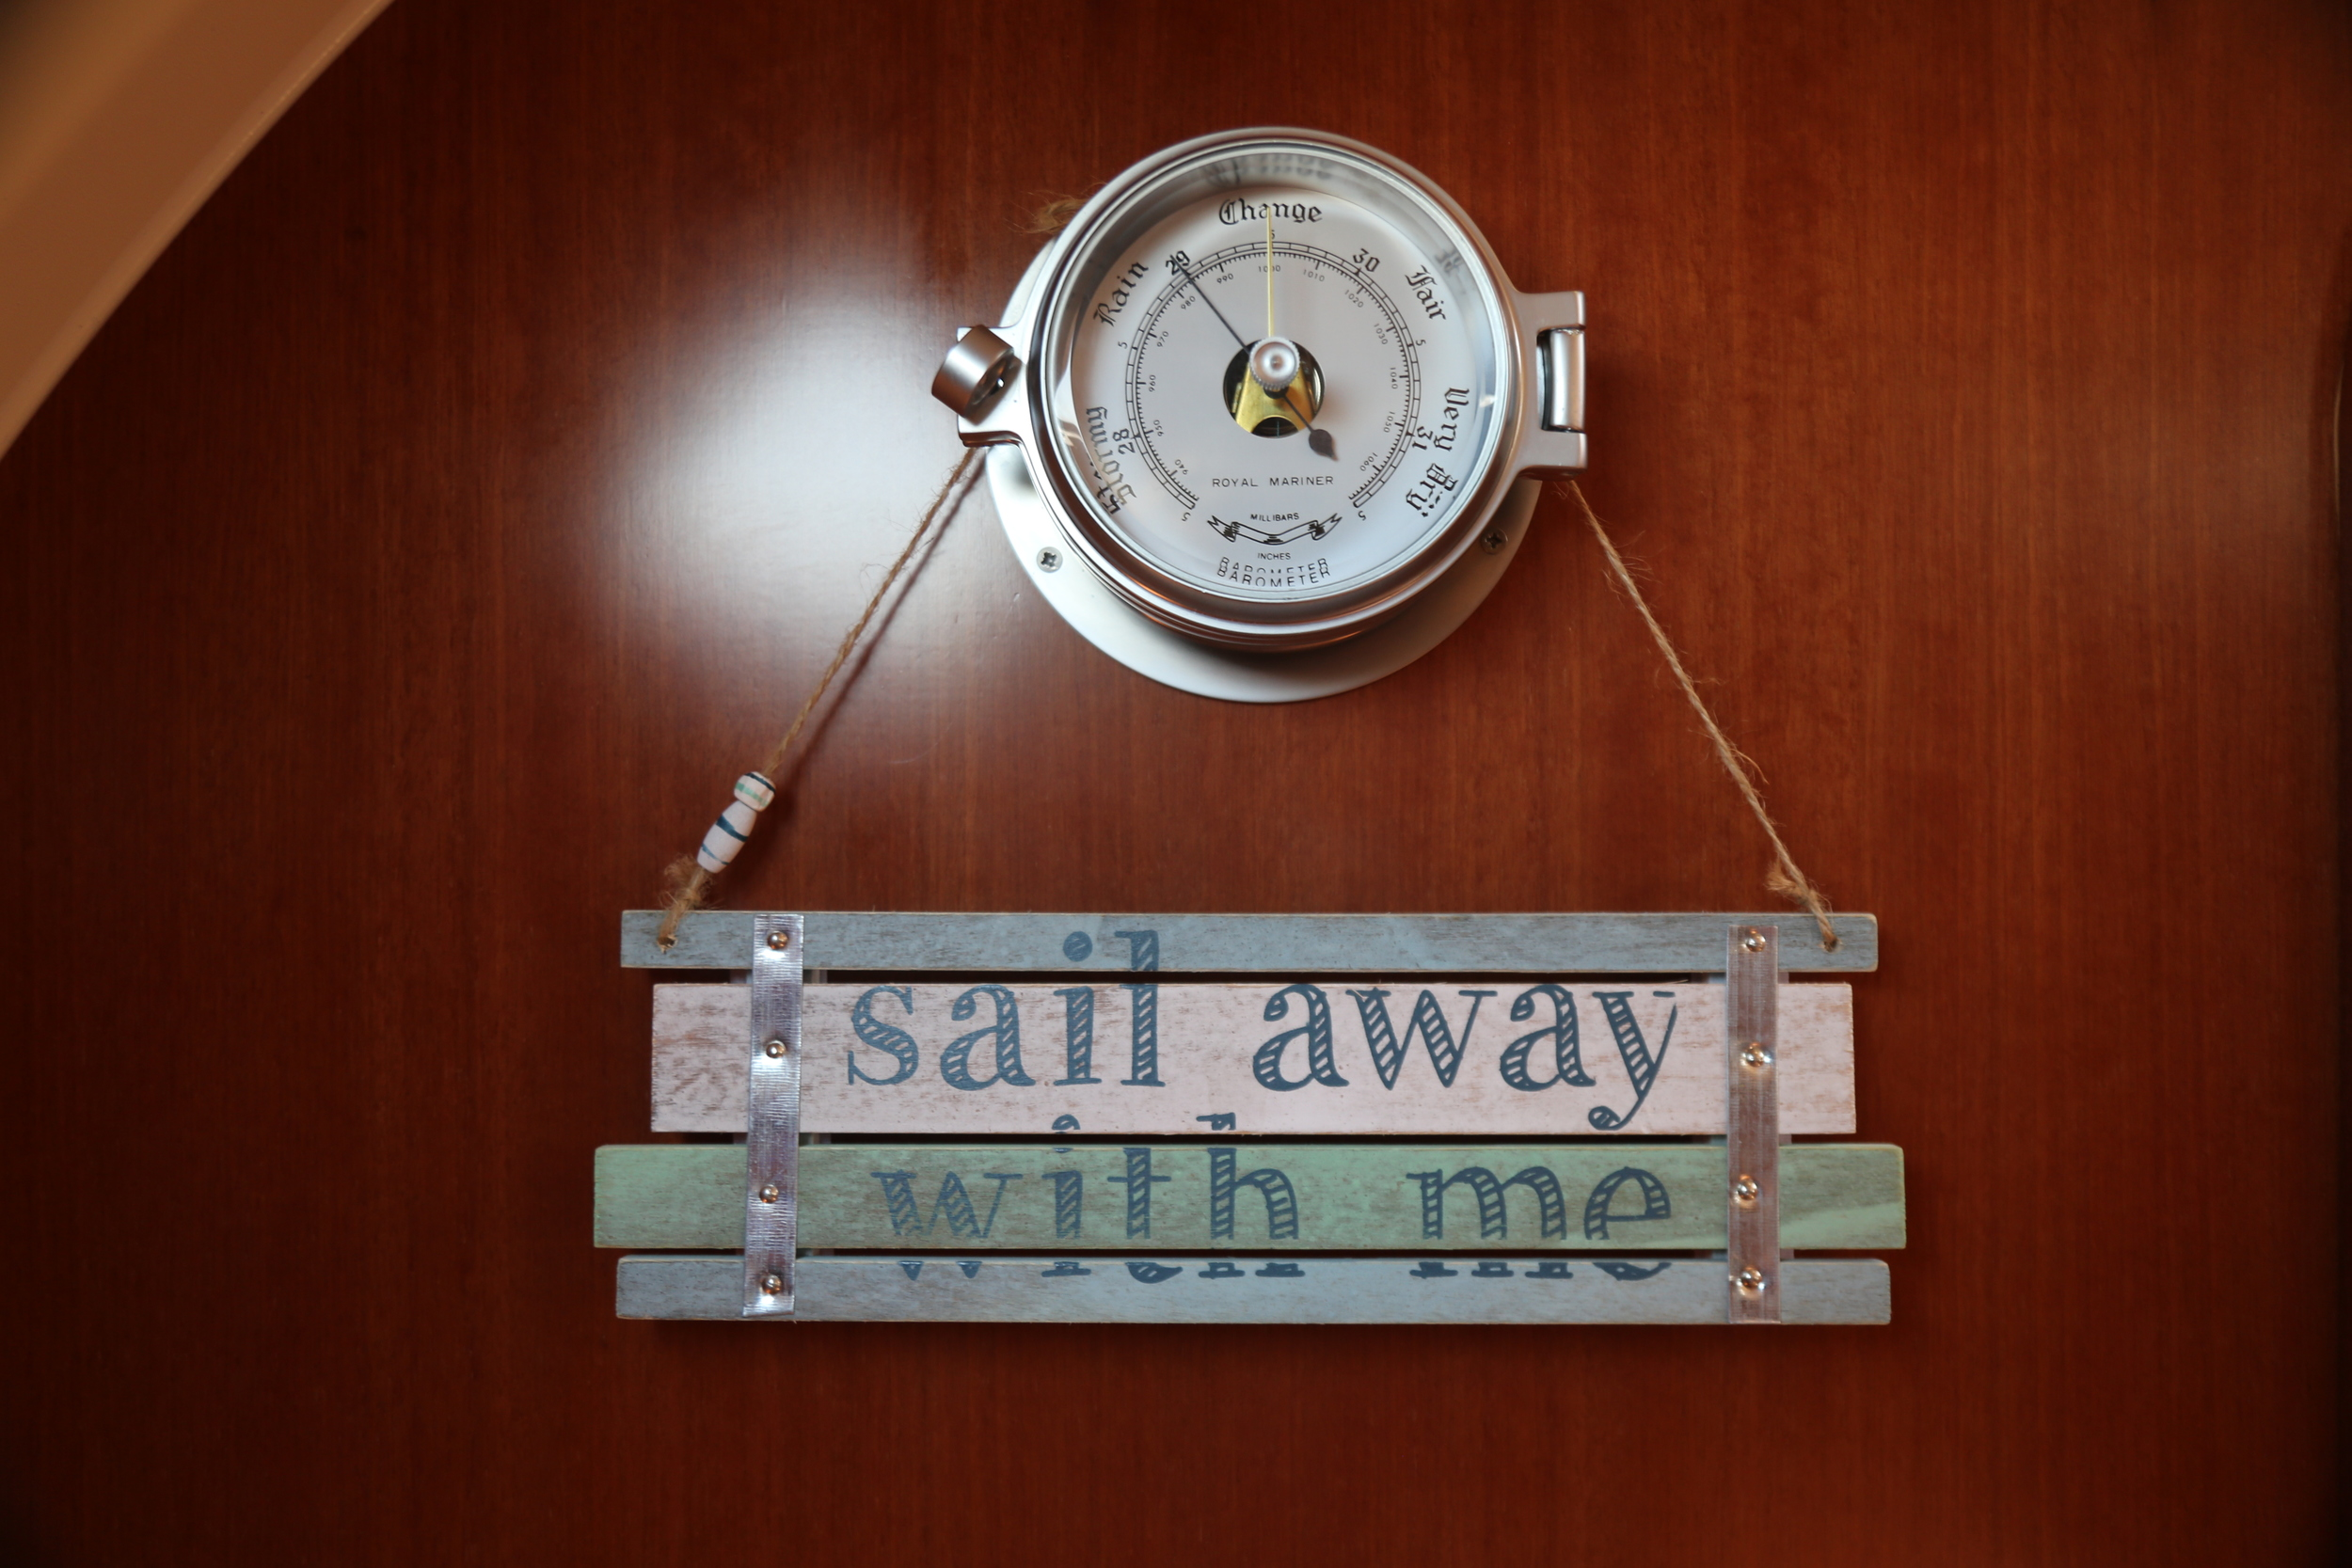 Both the Barometer and 'Sail away with me' sign were gifts